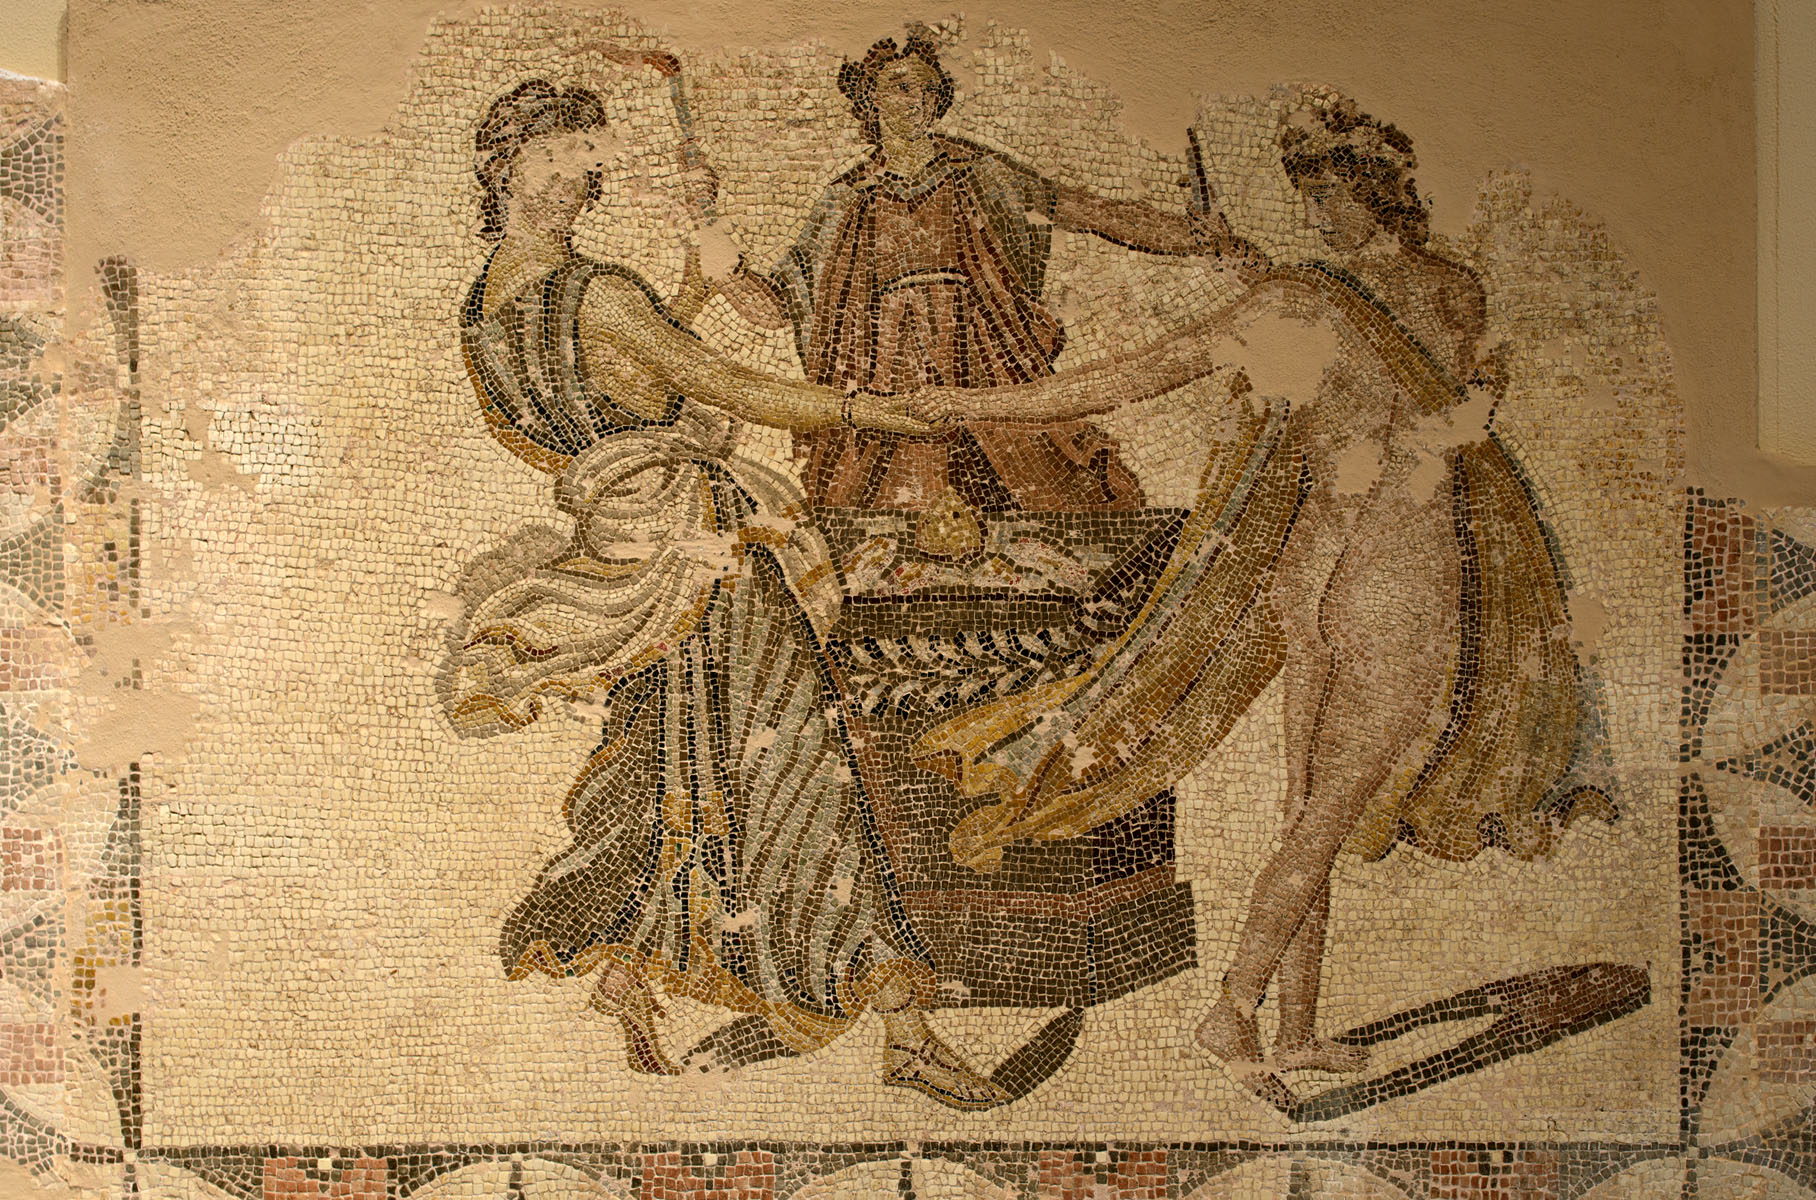 Mosaic Dance by Three Graces paintings